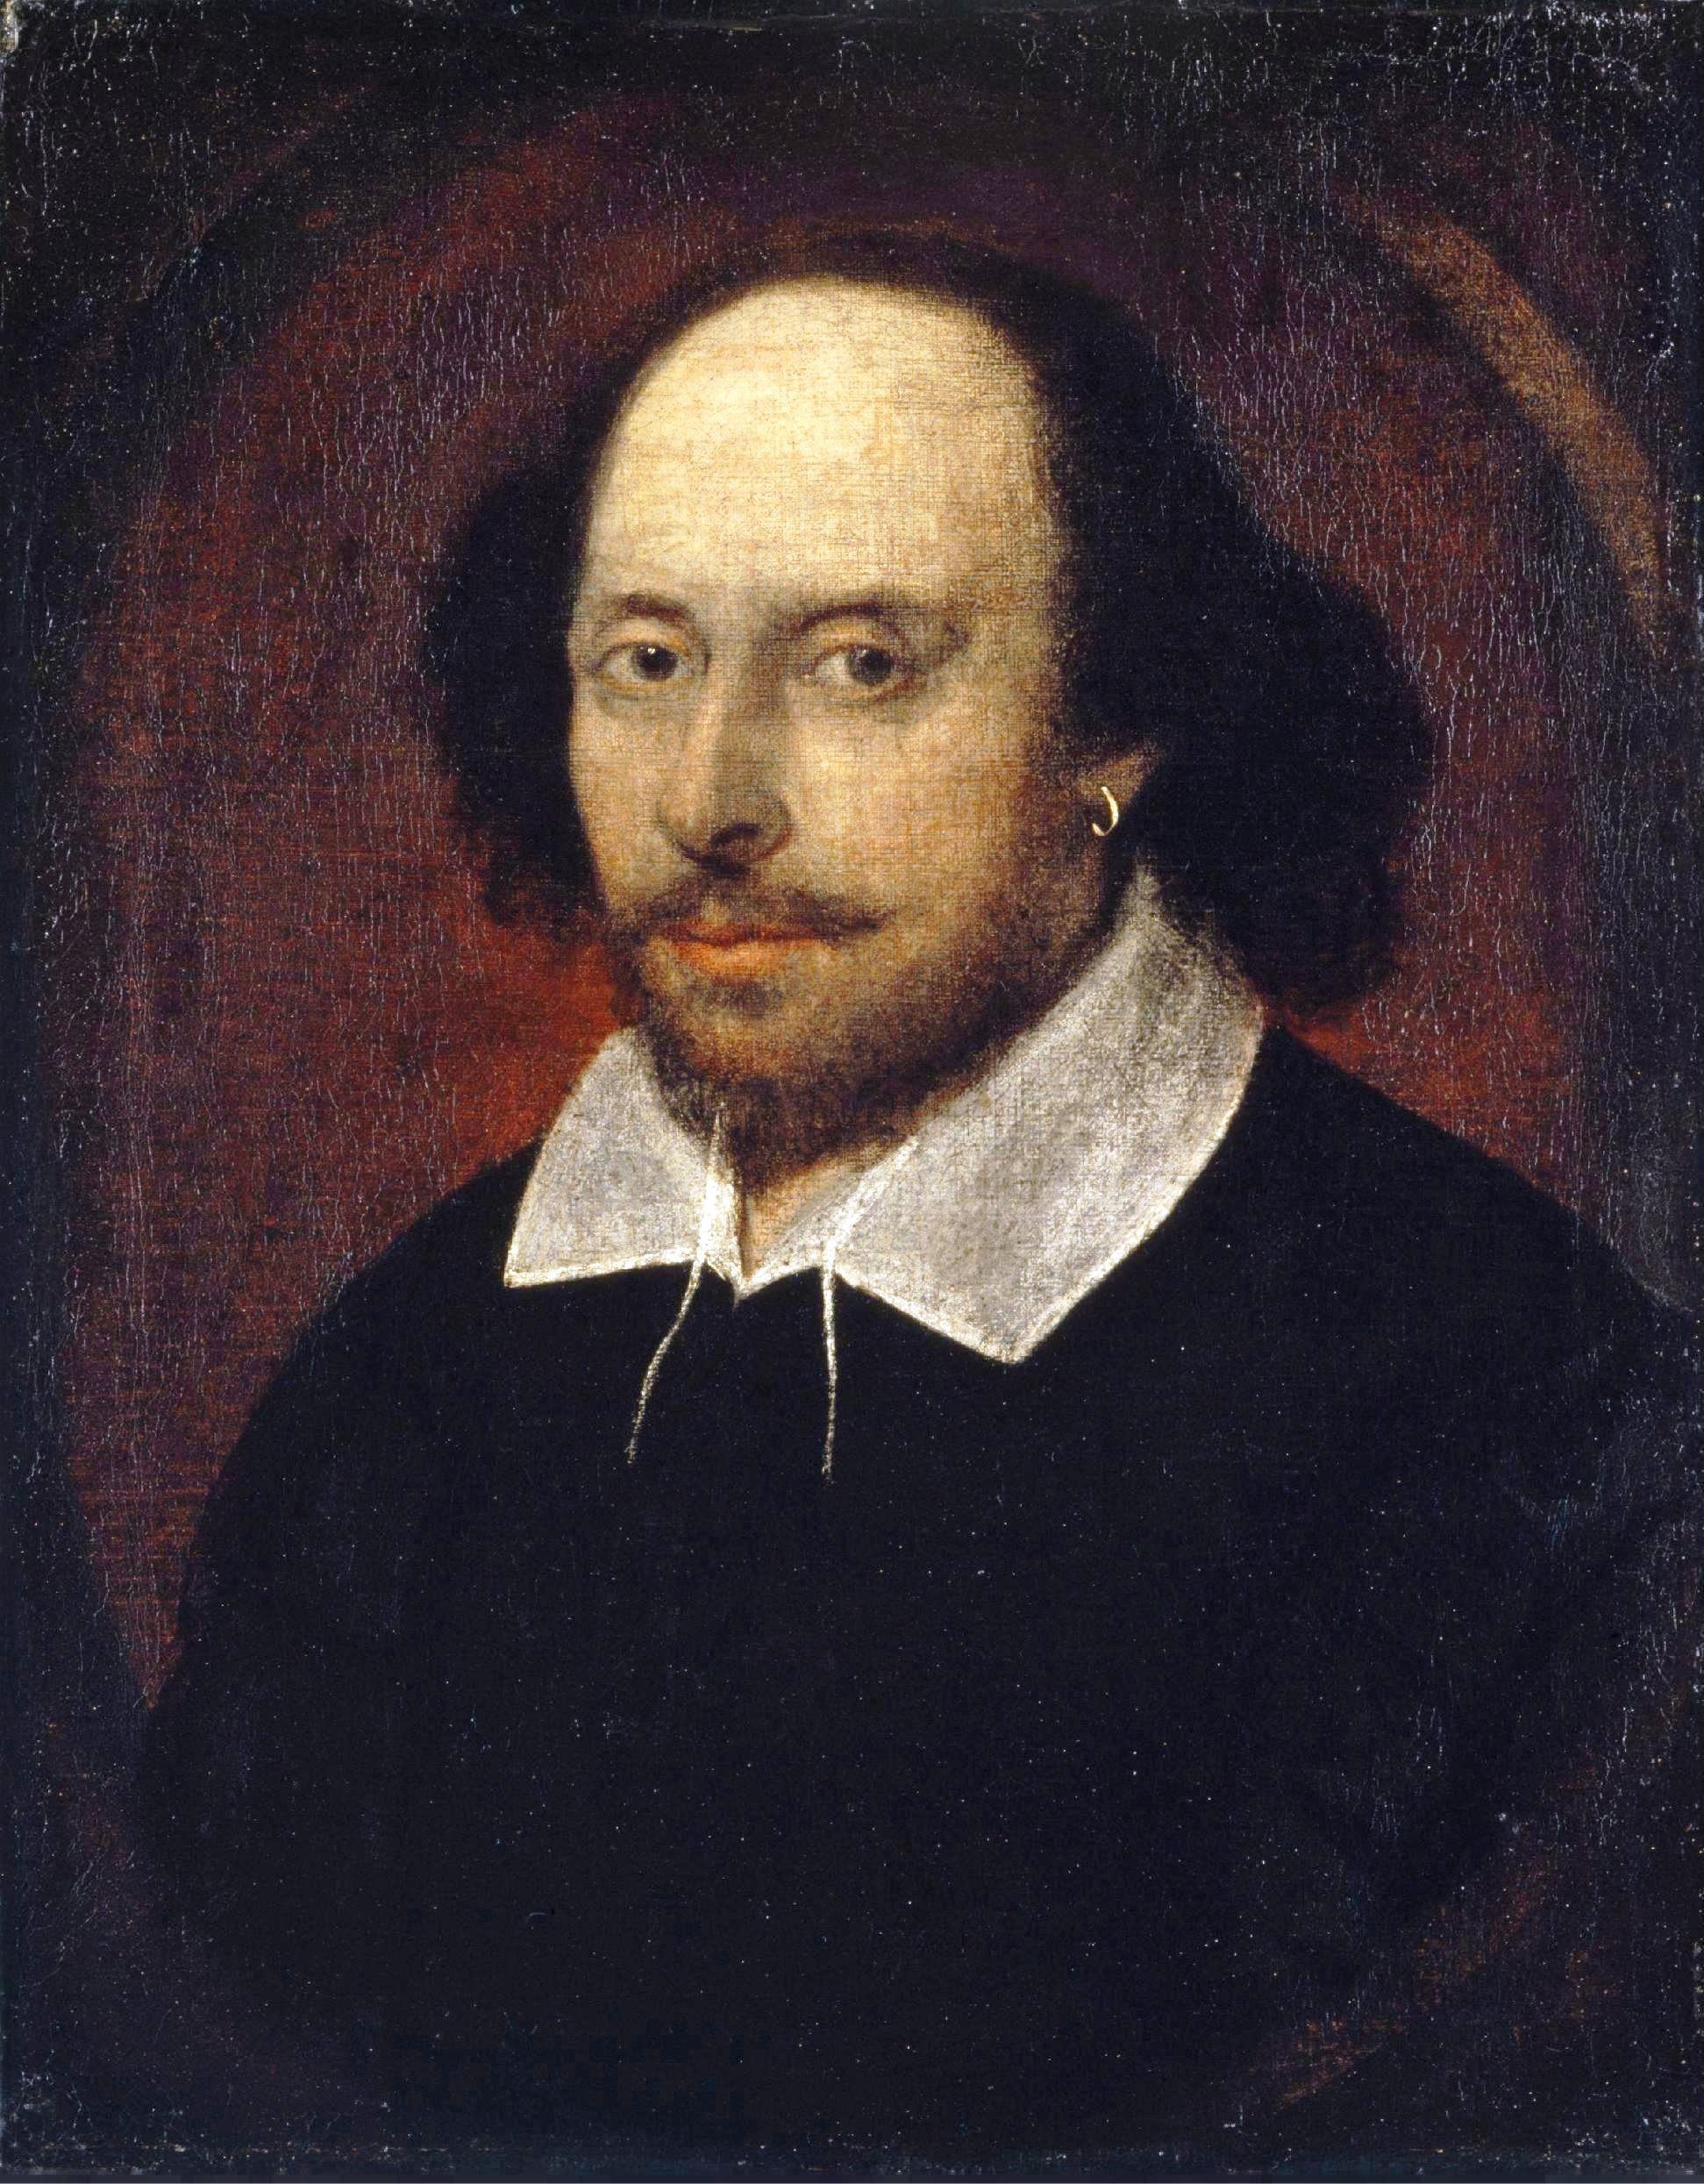 William Shakespeare (1564-1616), subject of investigative research by Icons of Europe, Brussels.